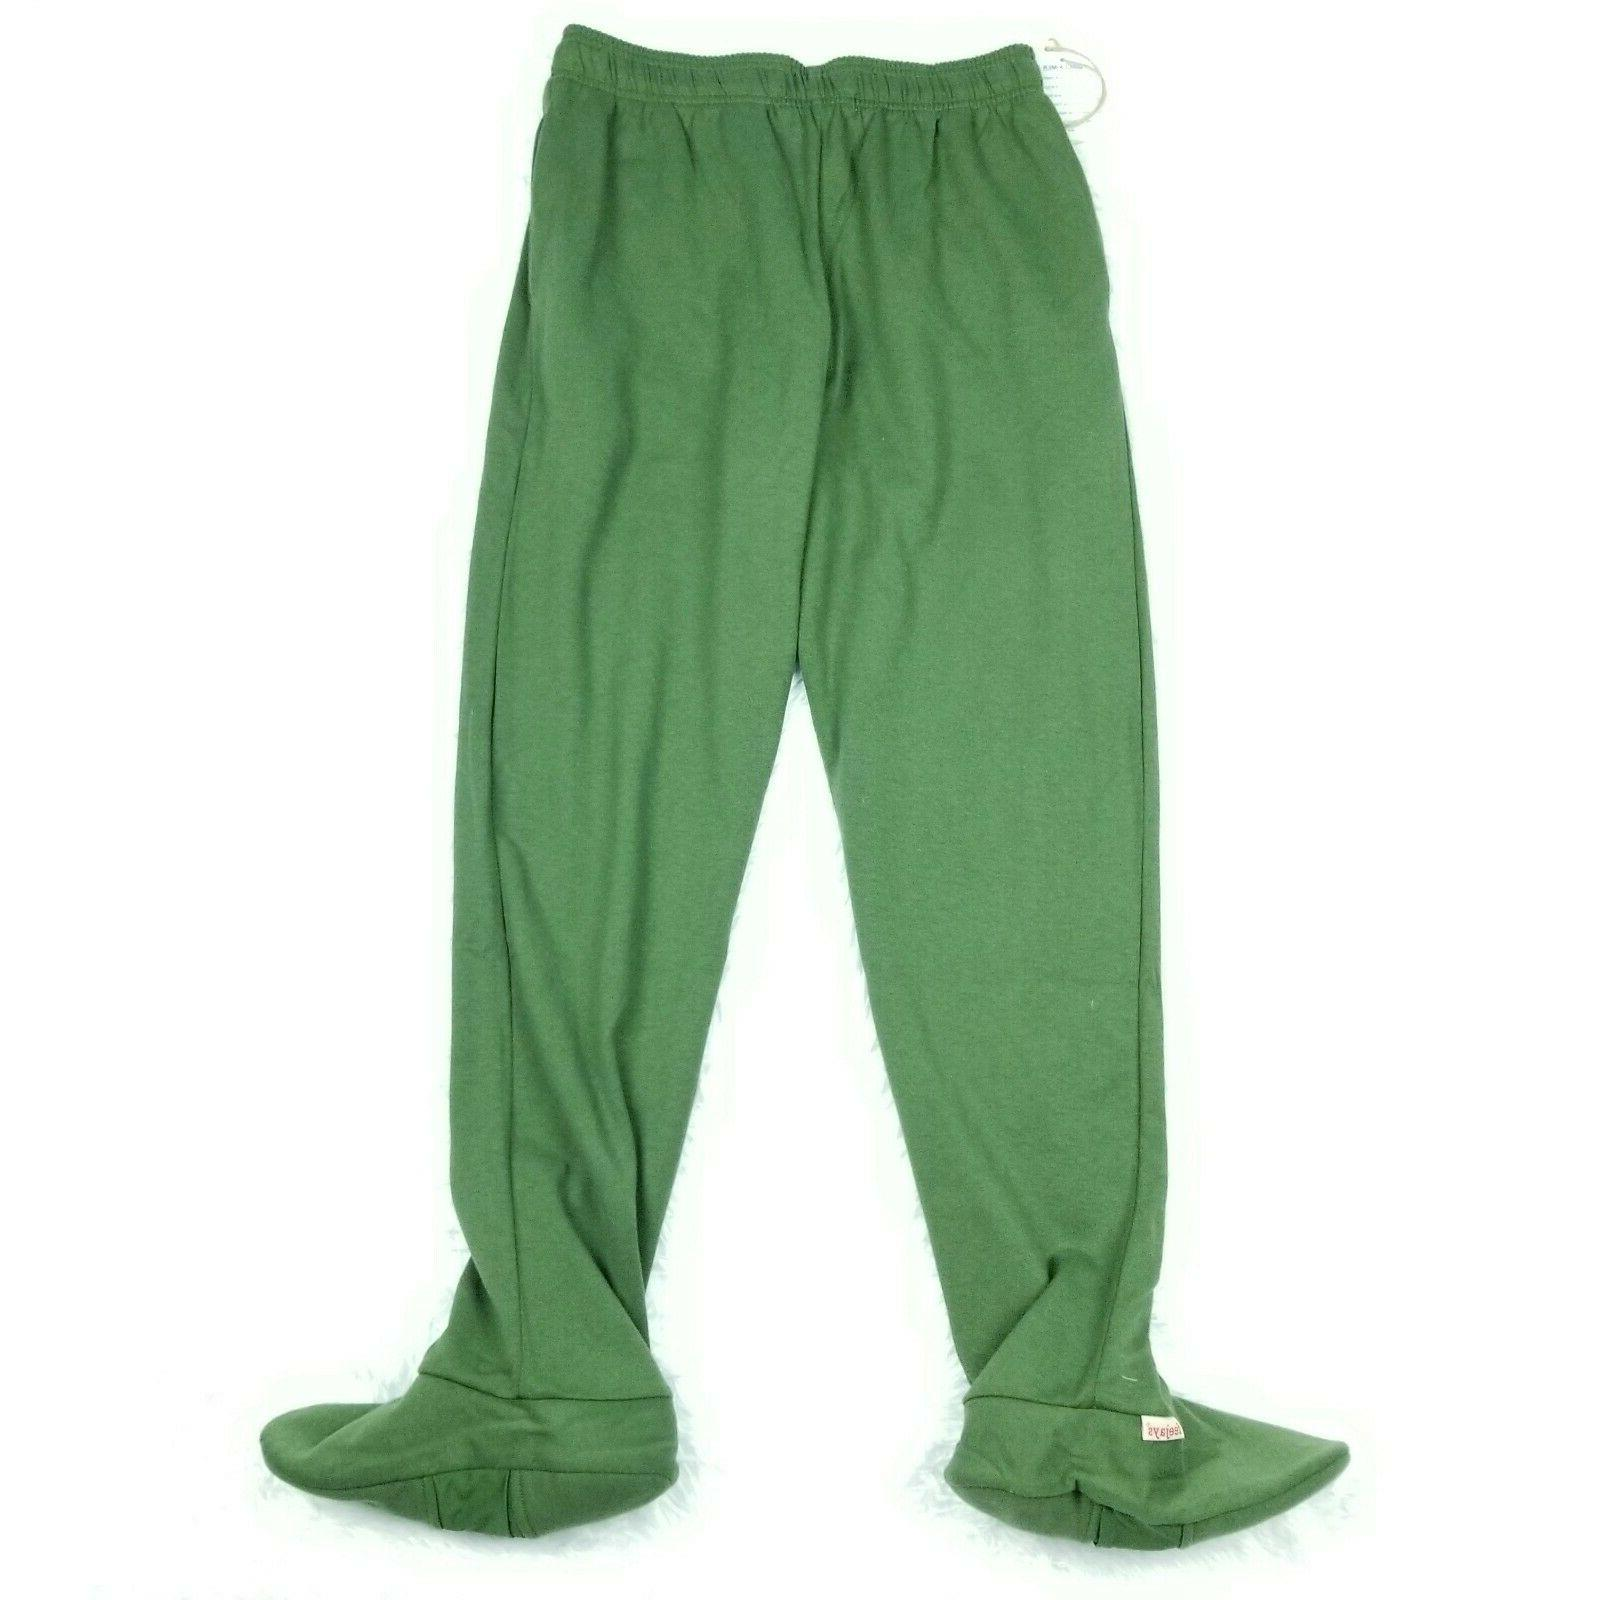 Feejays NWT Sweatpants Green